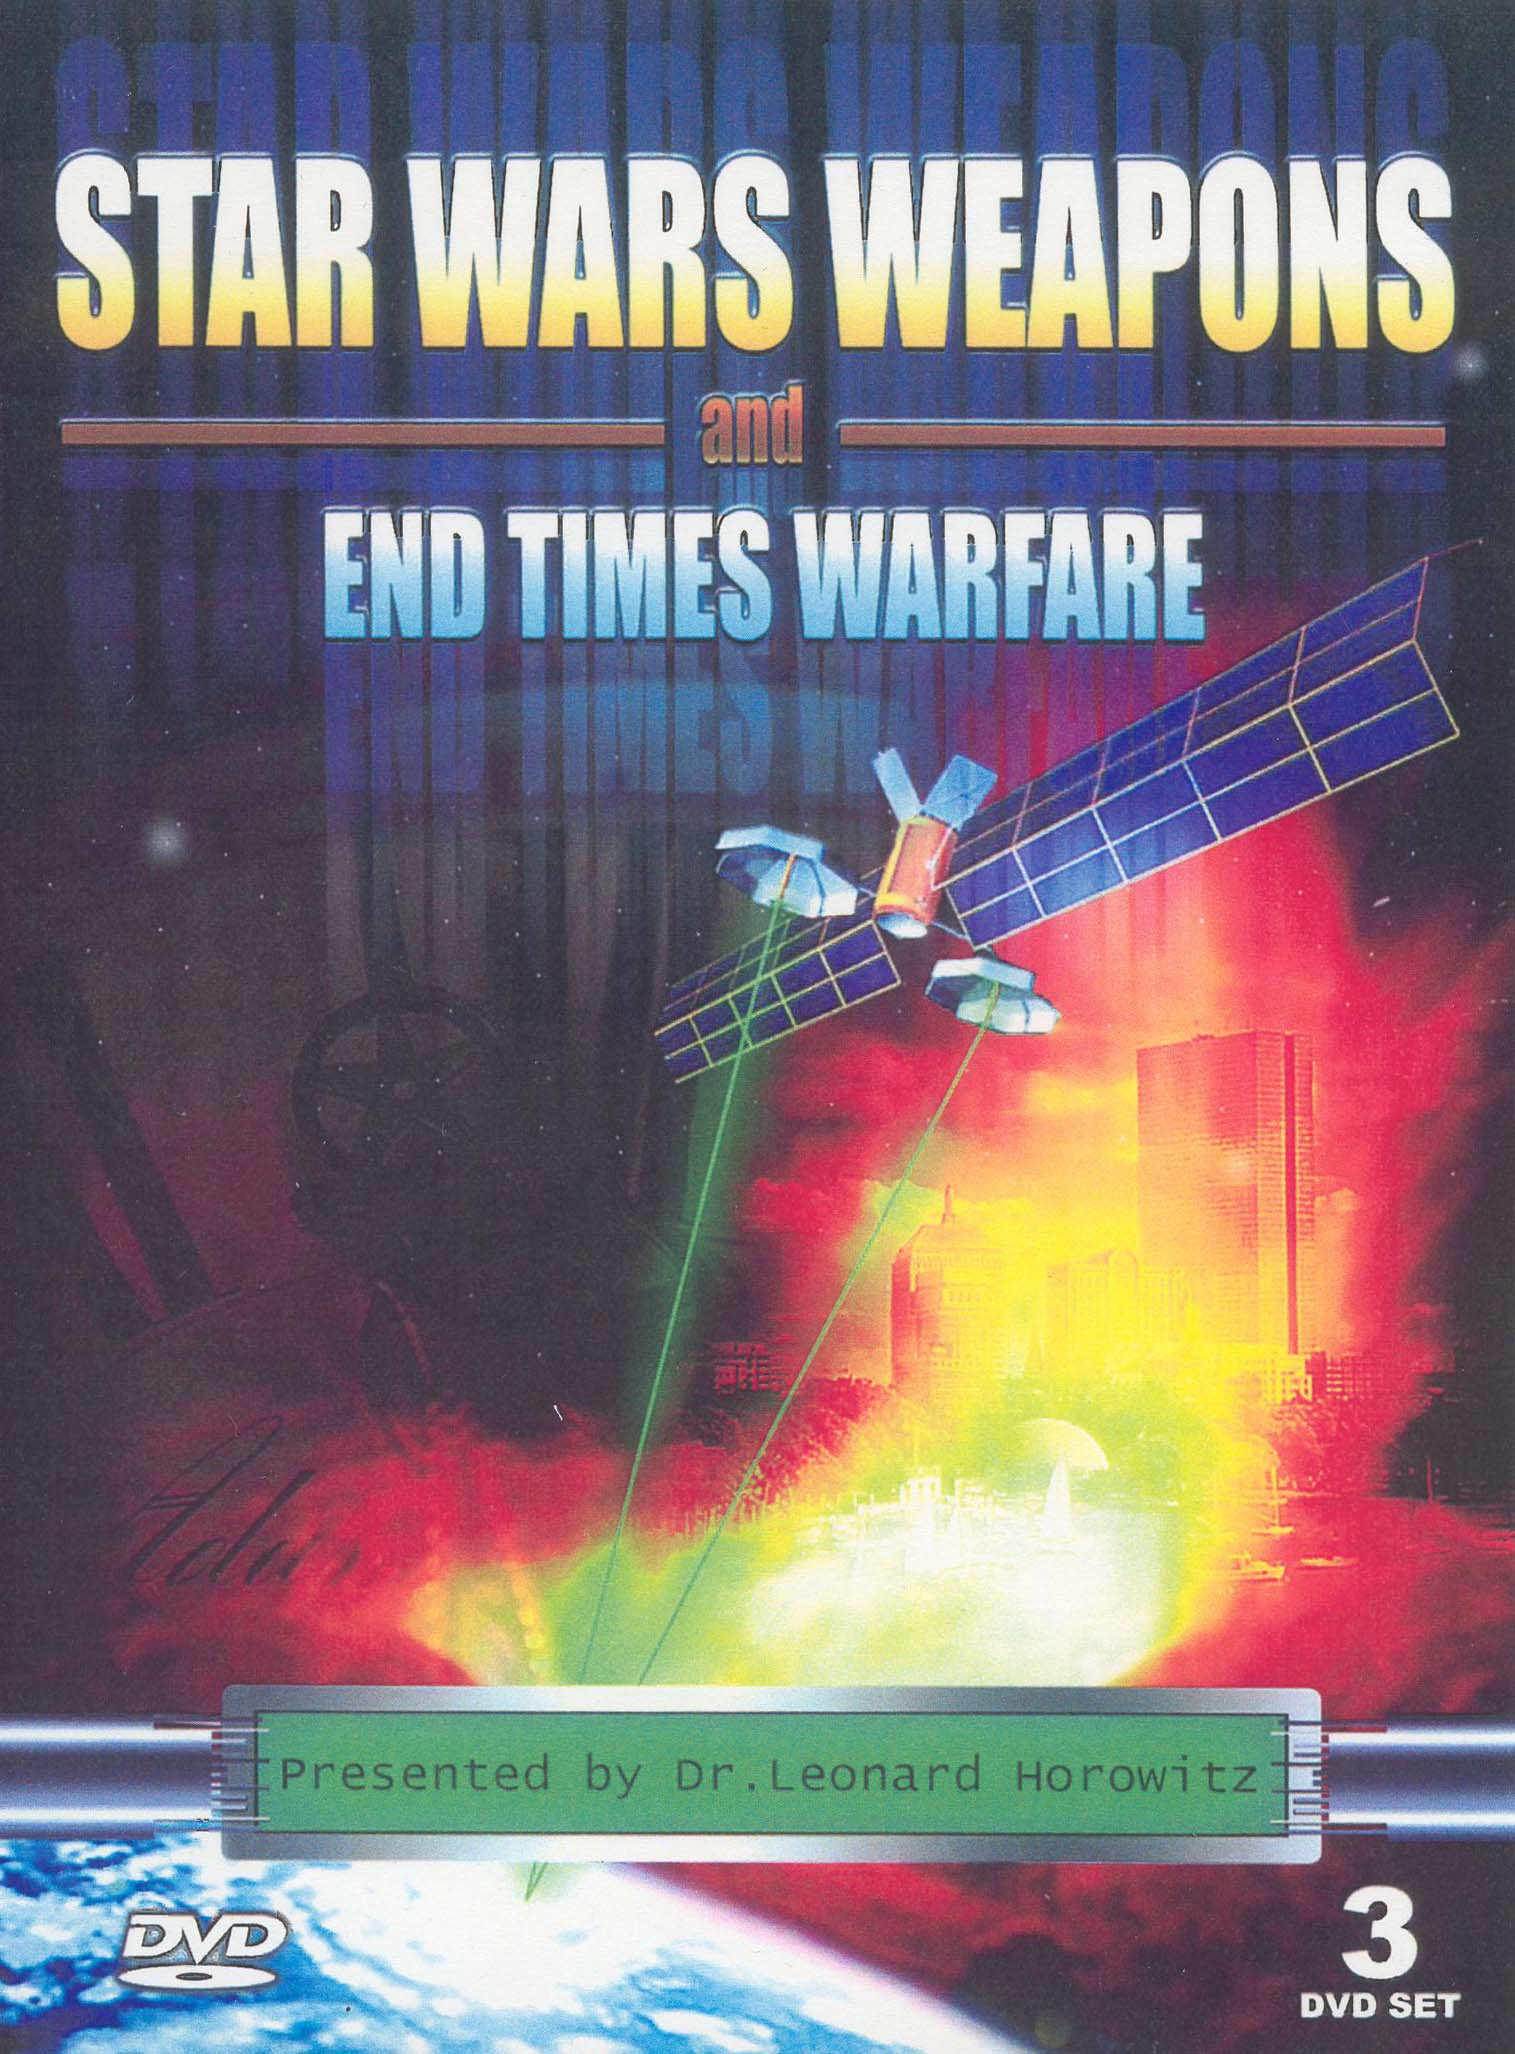 Len Horowitz: Star Wars Weapons and End Times Warfare